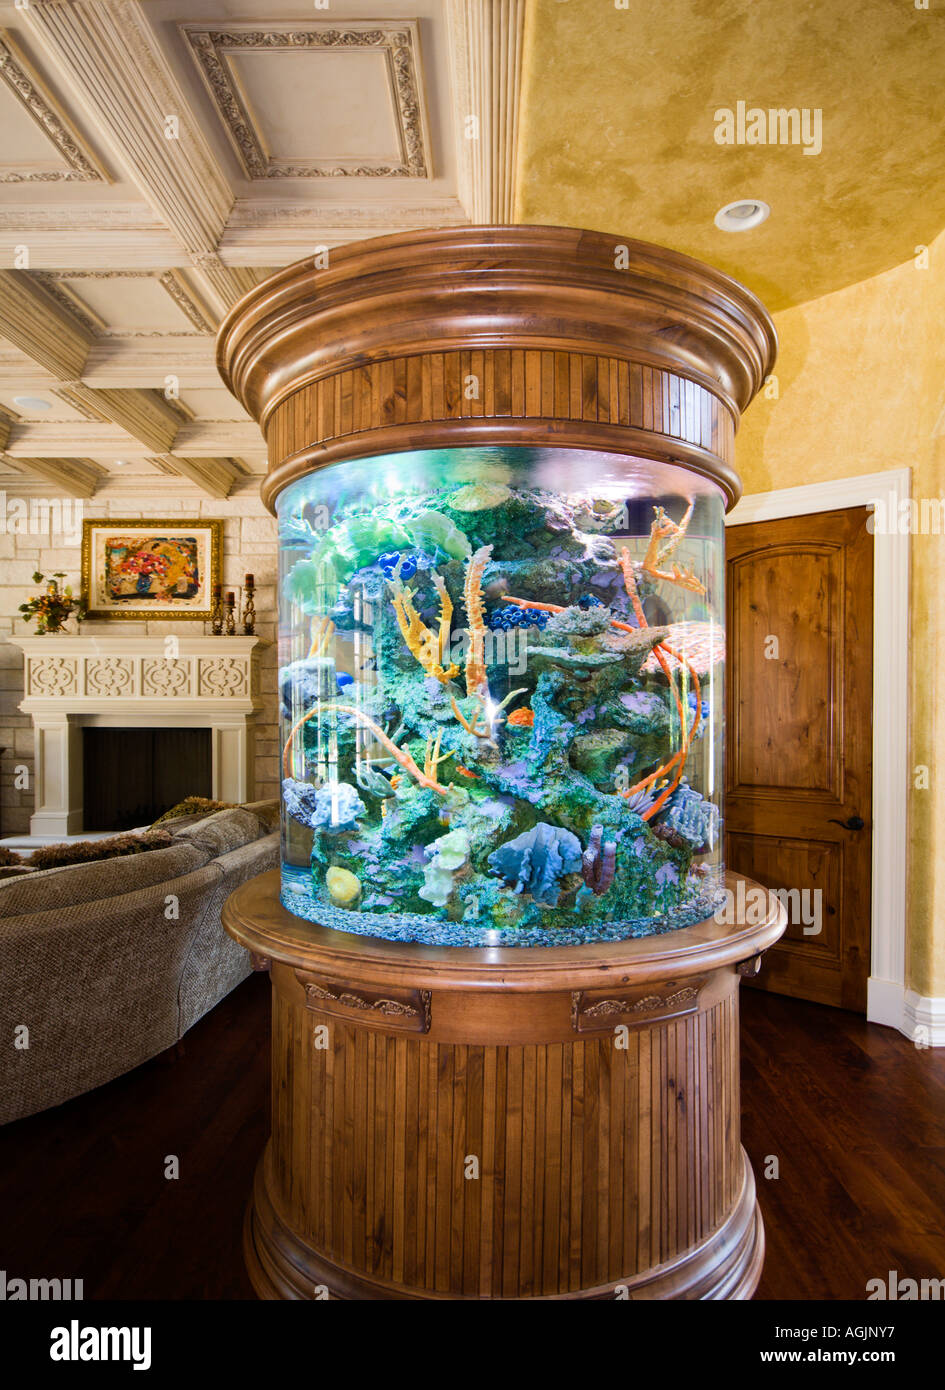 Circular freestanding saltwater aquarium with wood base and cap in an upscale home in the northwest suburbs of Chicago Illinois - Stock Image